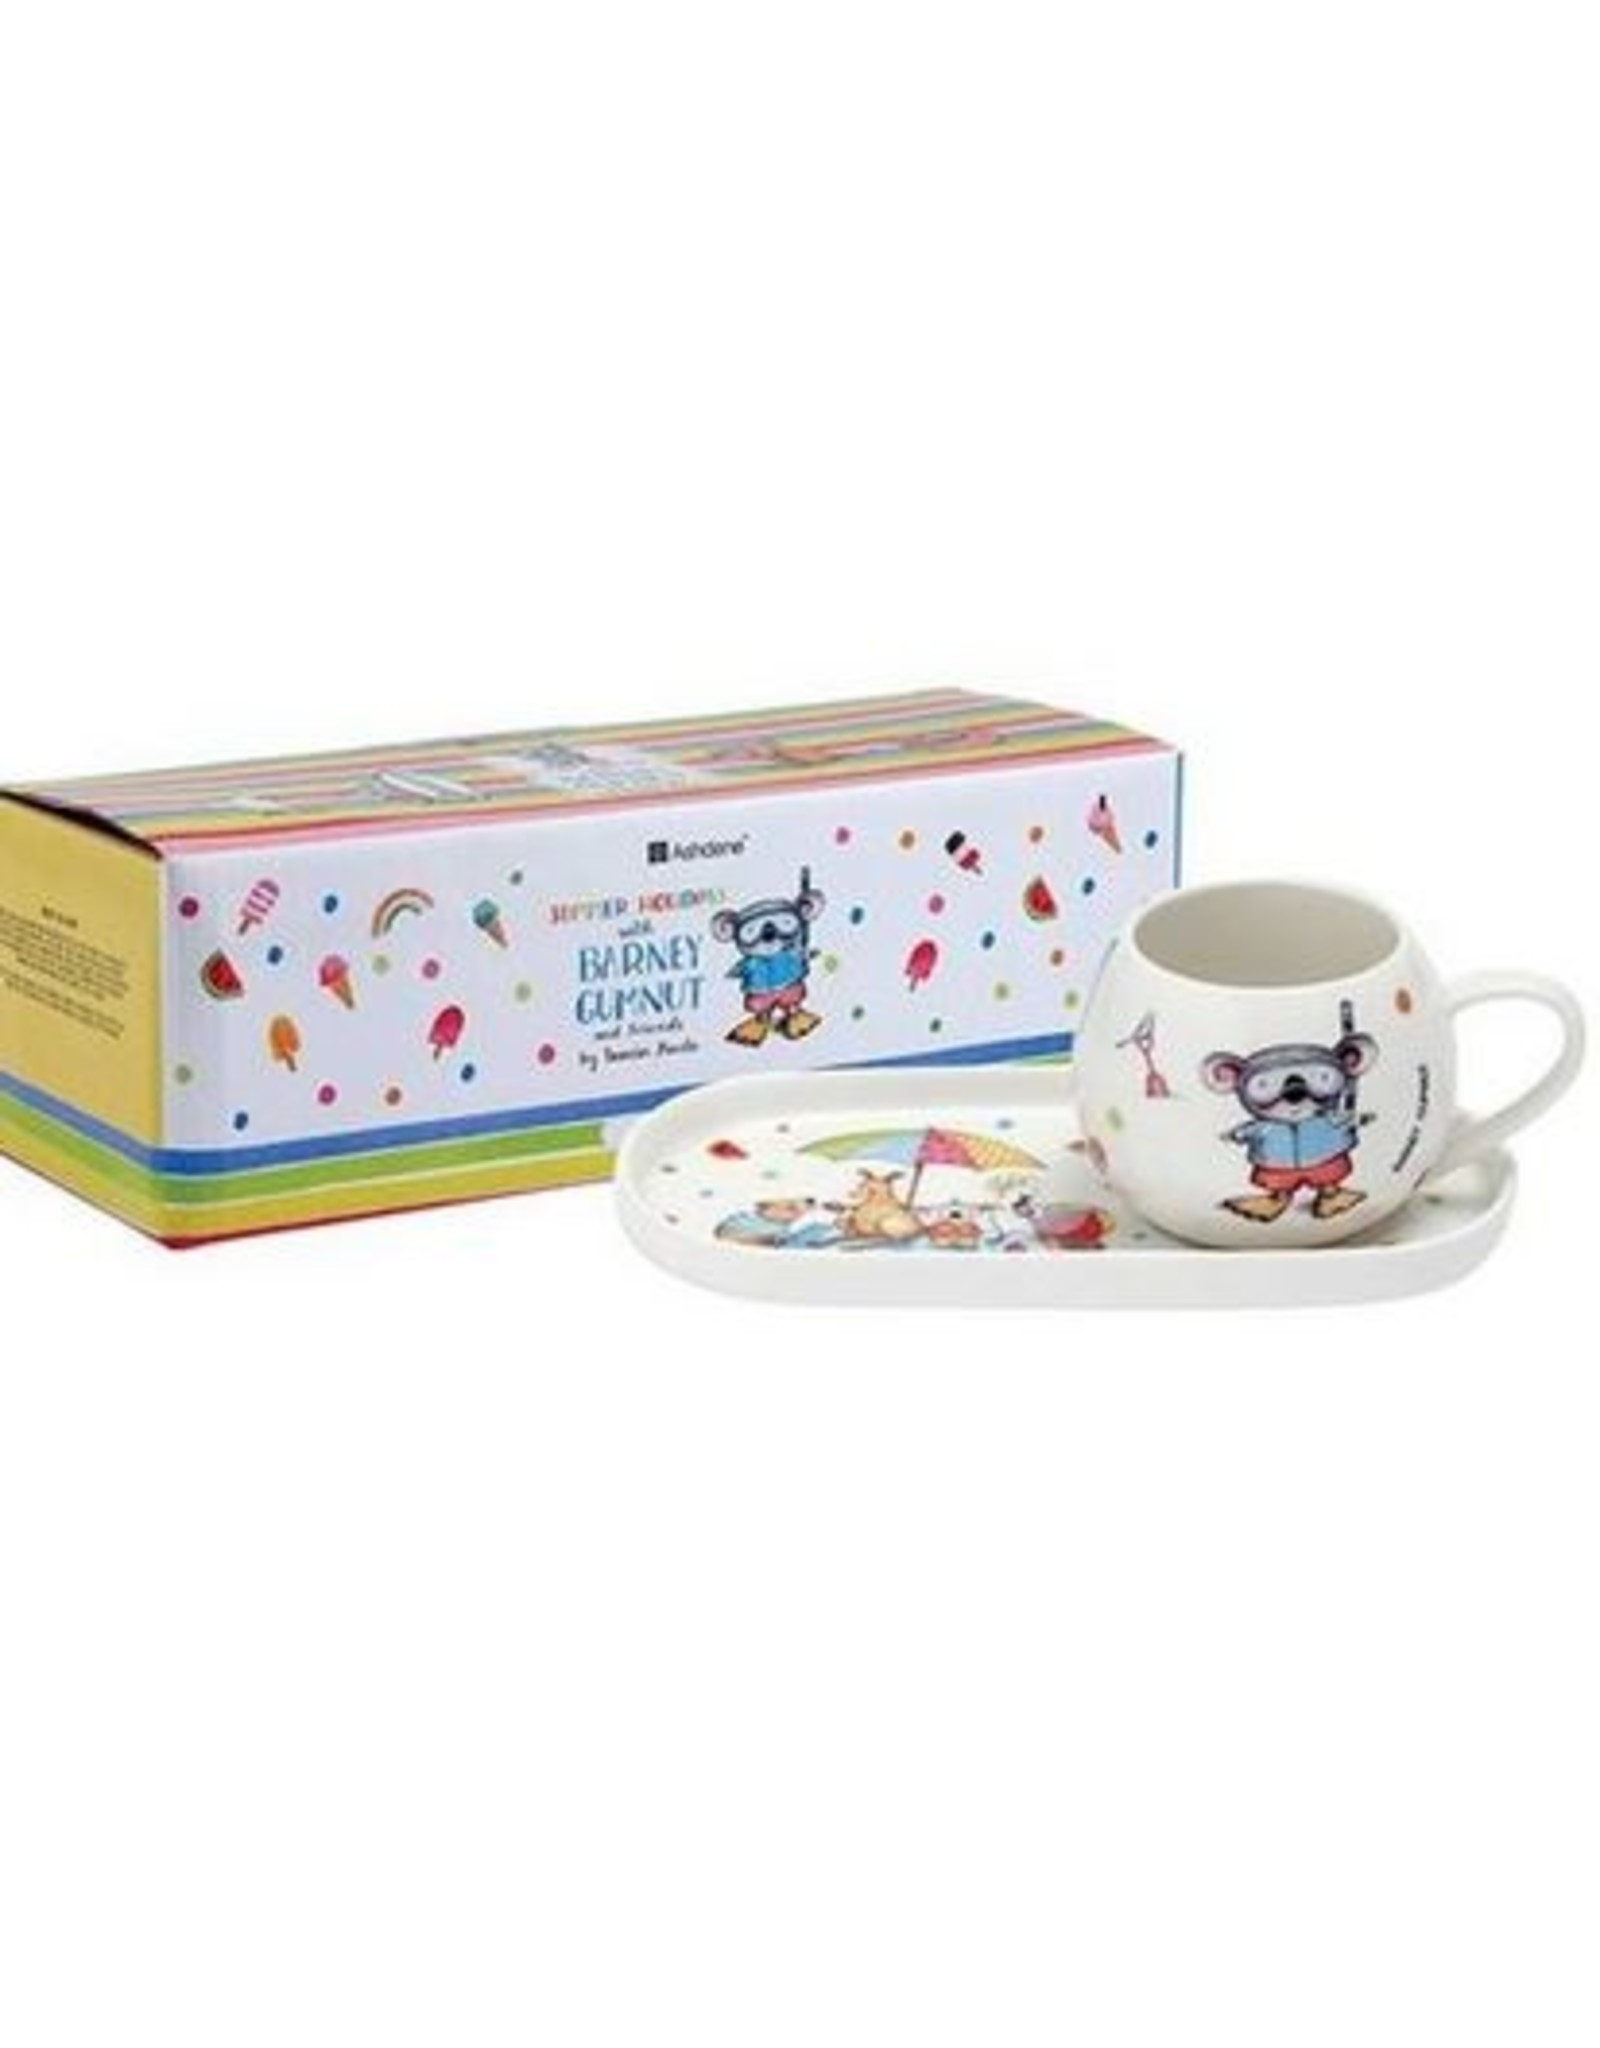 Summer with Barney Mug & Plate Set